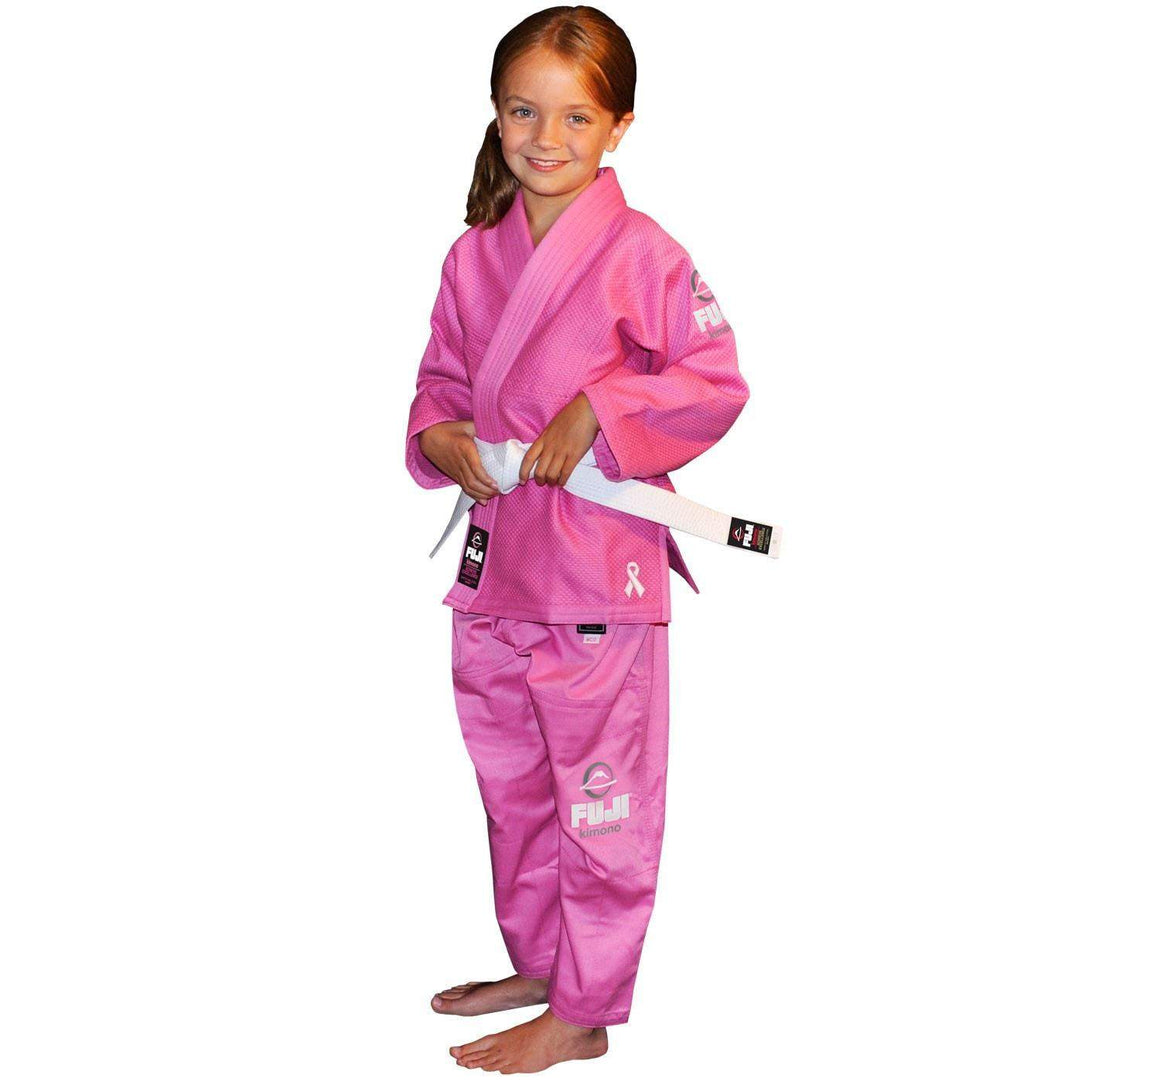 Fuji All Around Kids BJJ Gi - Pink